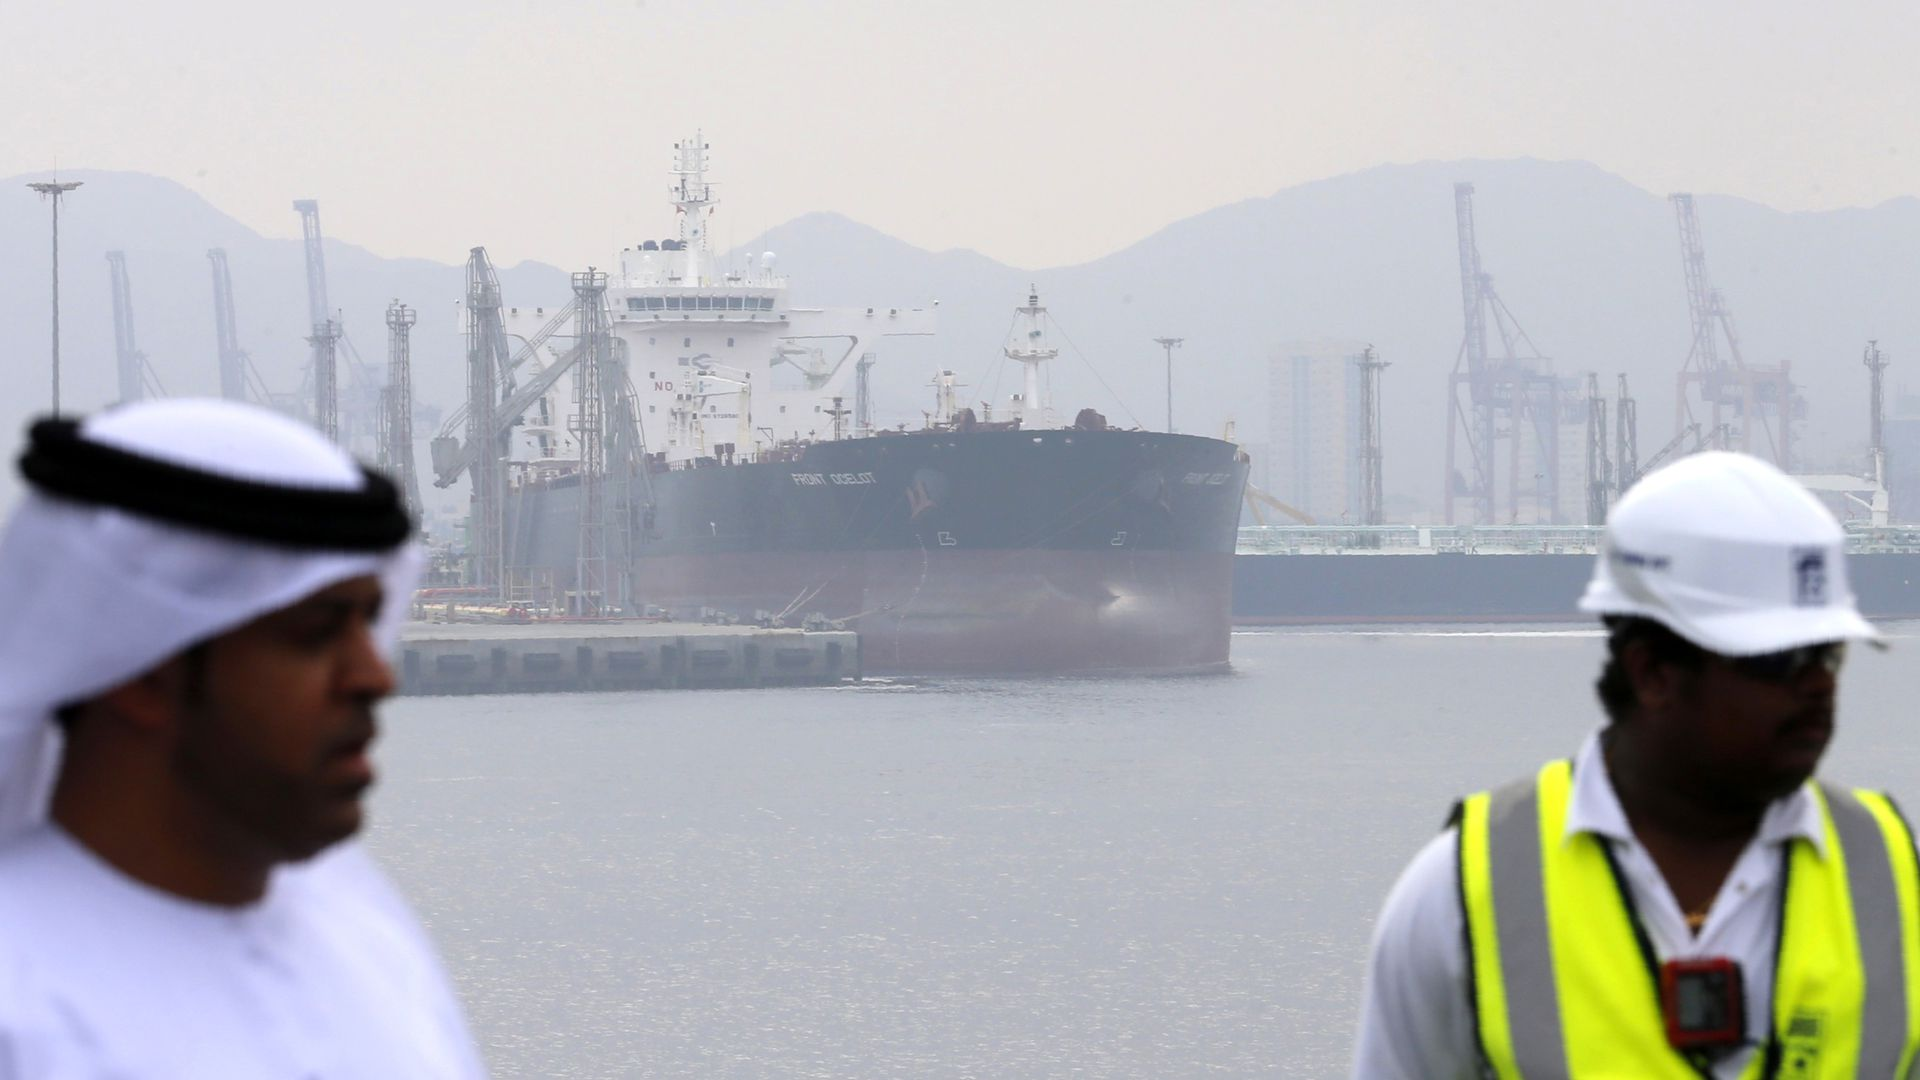 A tanker is seen at the oil terminal of Fujairah during the inauguration ceremony of a dock for supertankers on September 21, 2016.